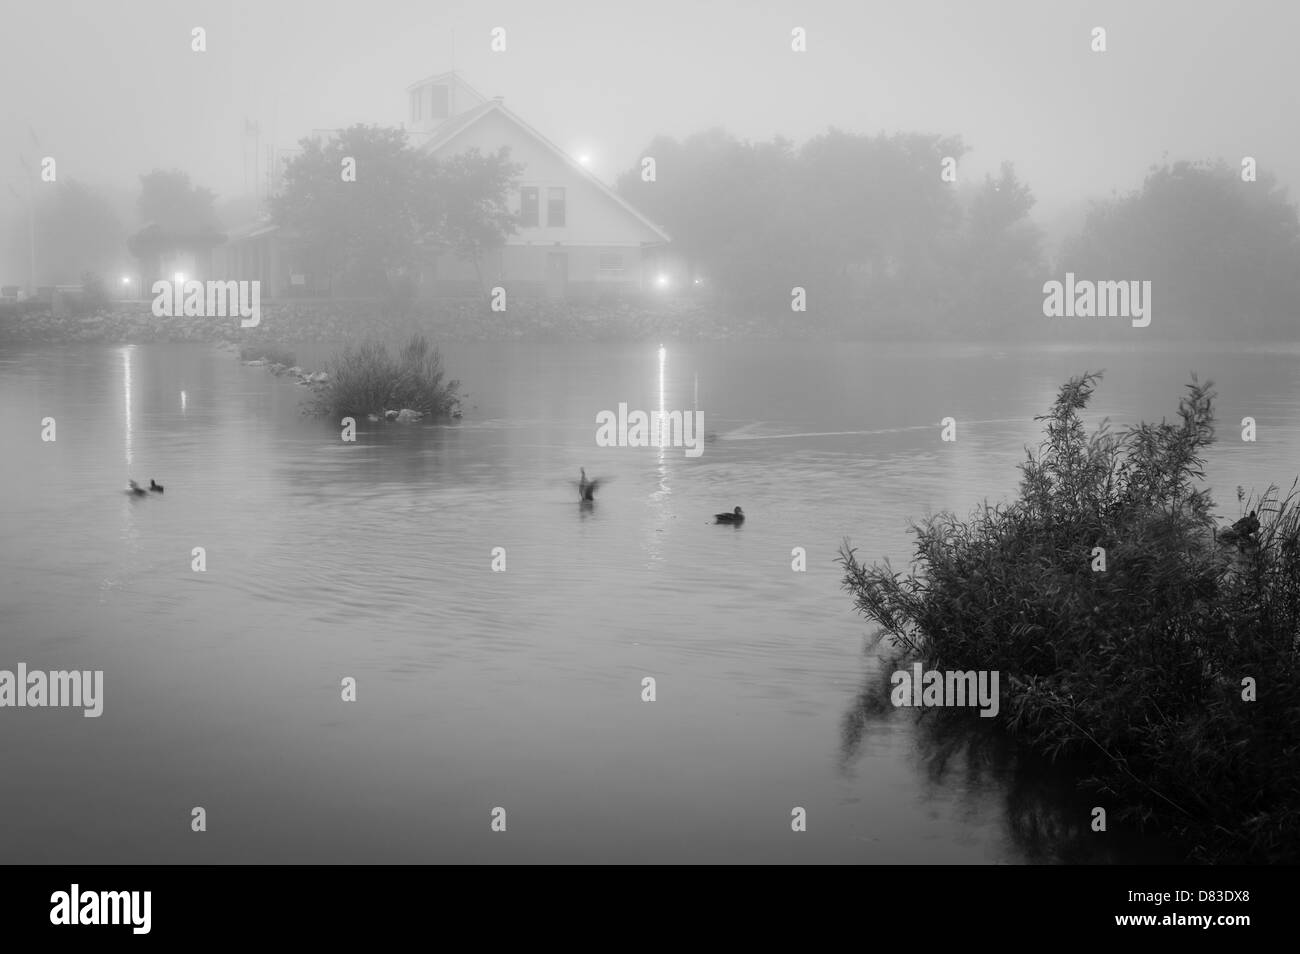 Heavy fog set over pond with few ducks and a lit building on its shore - Stock Image